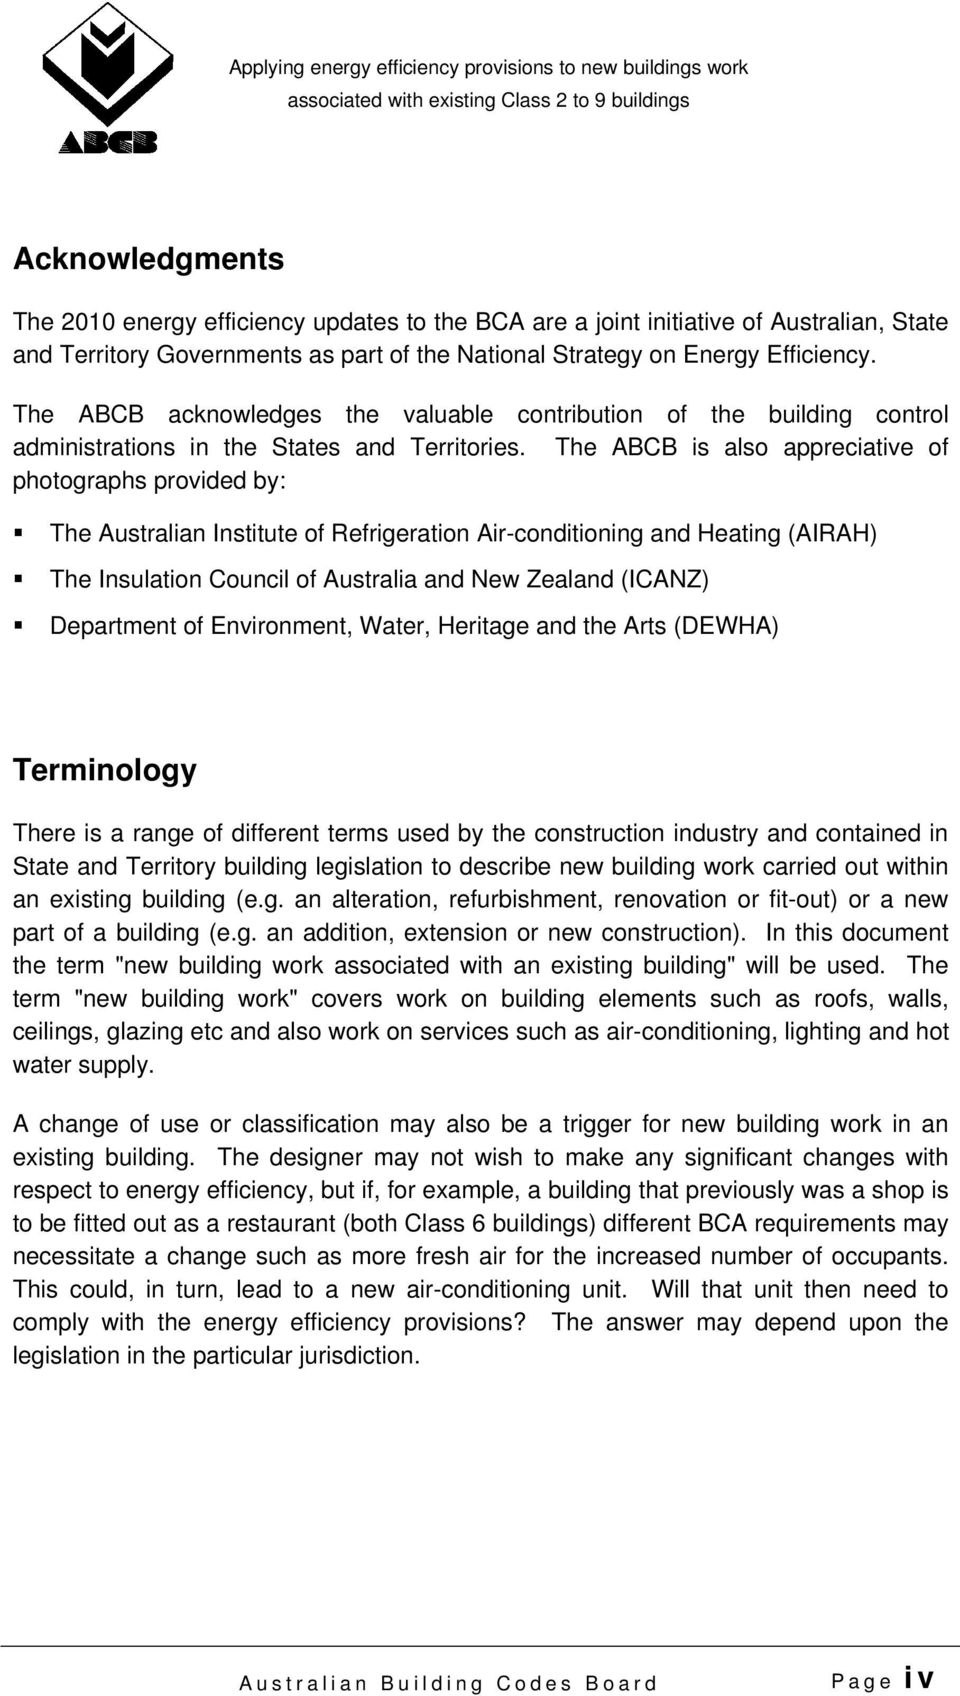 The ABCB is also appreciative of photographs provided by: The Australian Institute of Refrigeration Air-conditioning and Heating (AIRAH) The Insulation Council of Australia and New Zealand (ICANZ)